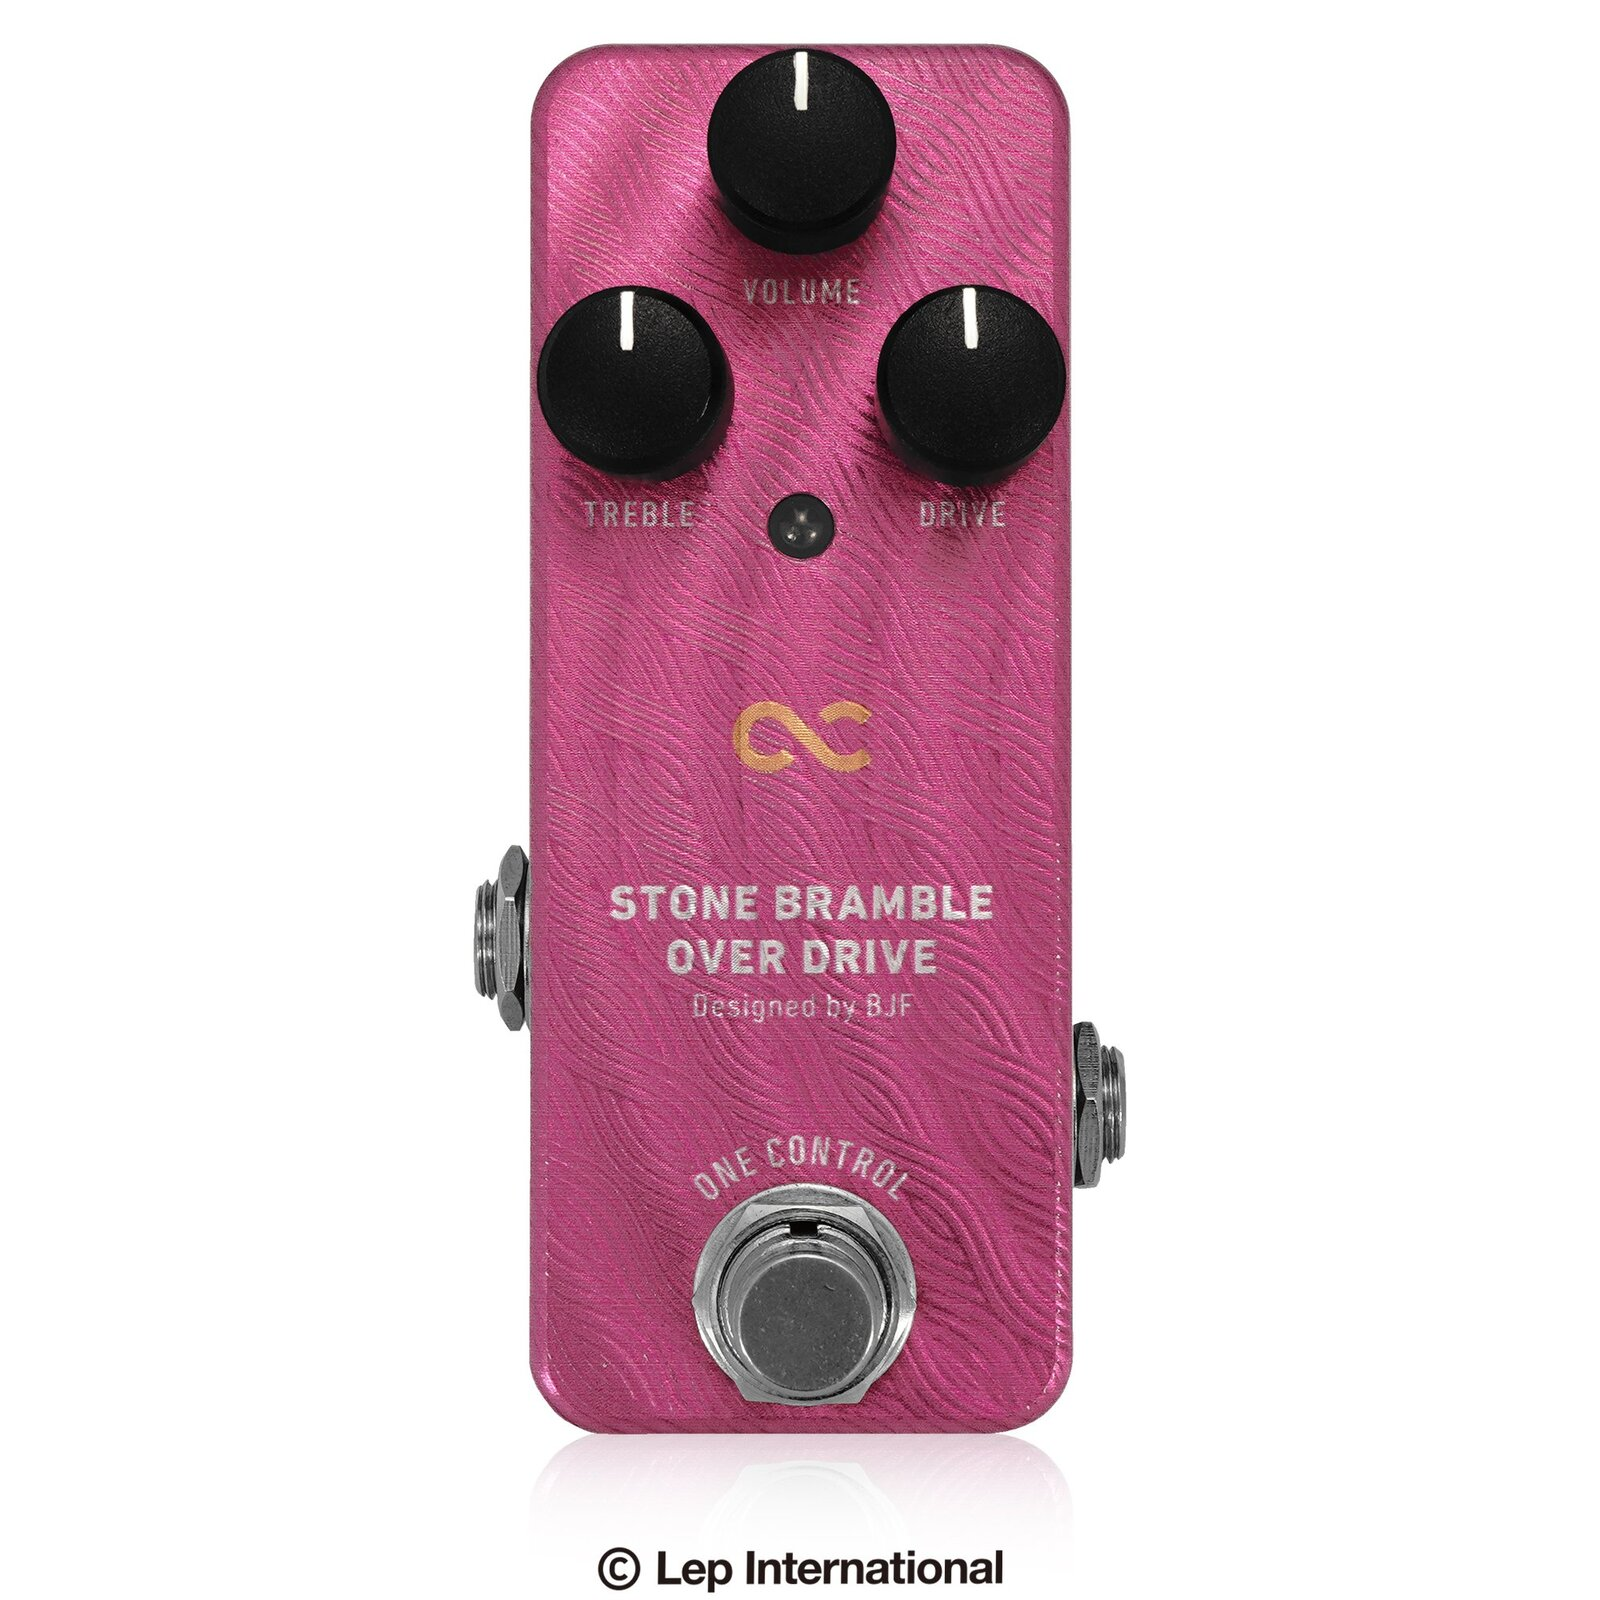 One Control Stone Bramble Overdrive BJF Series FX Overdrive Pedal